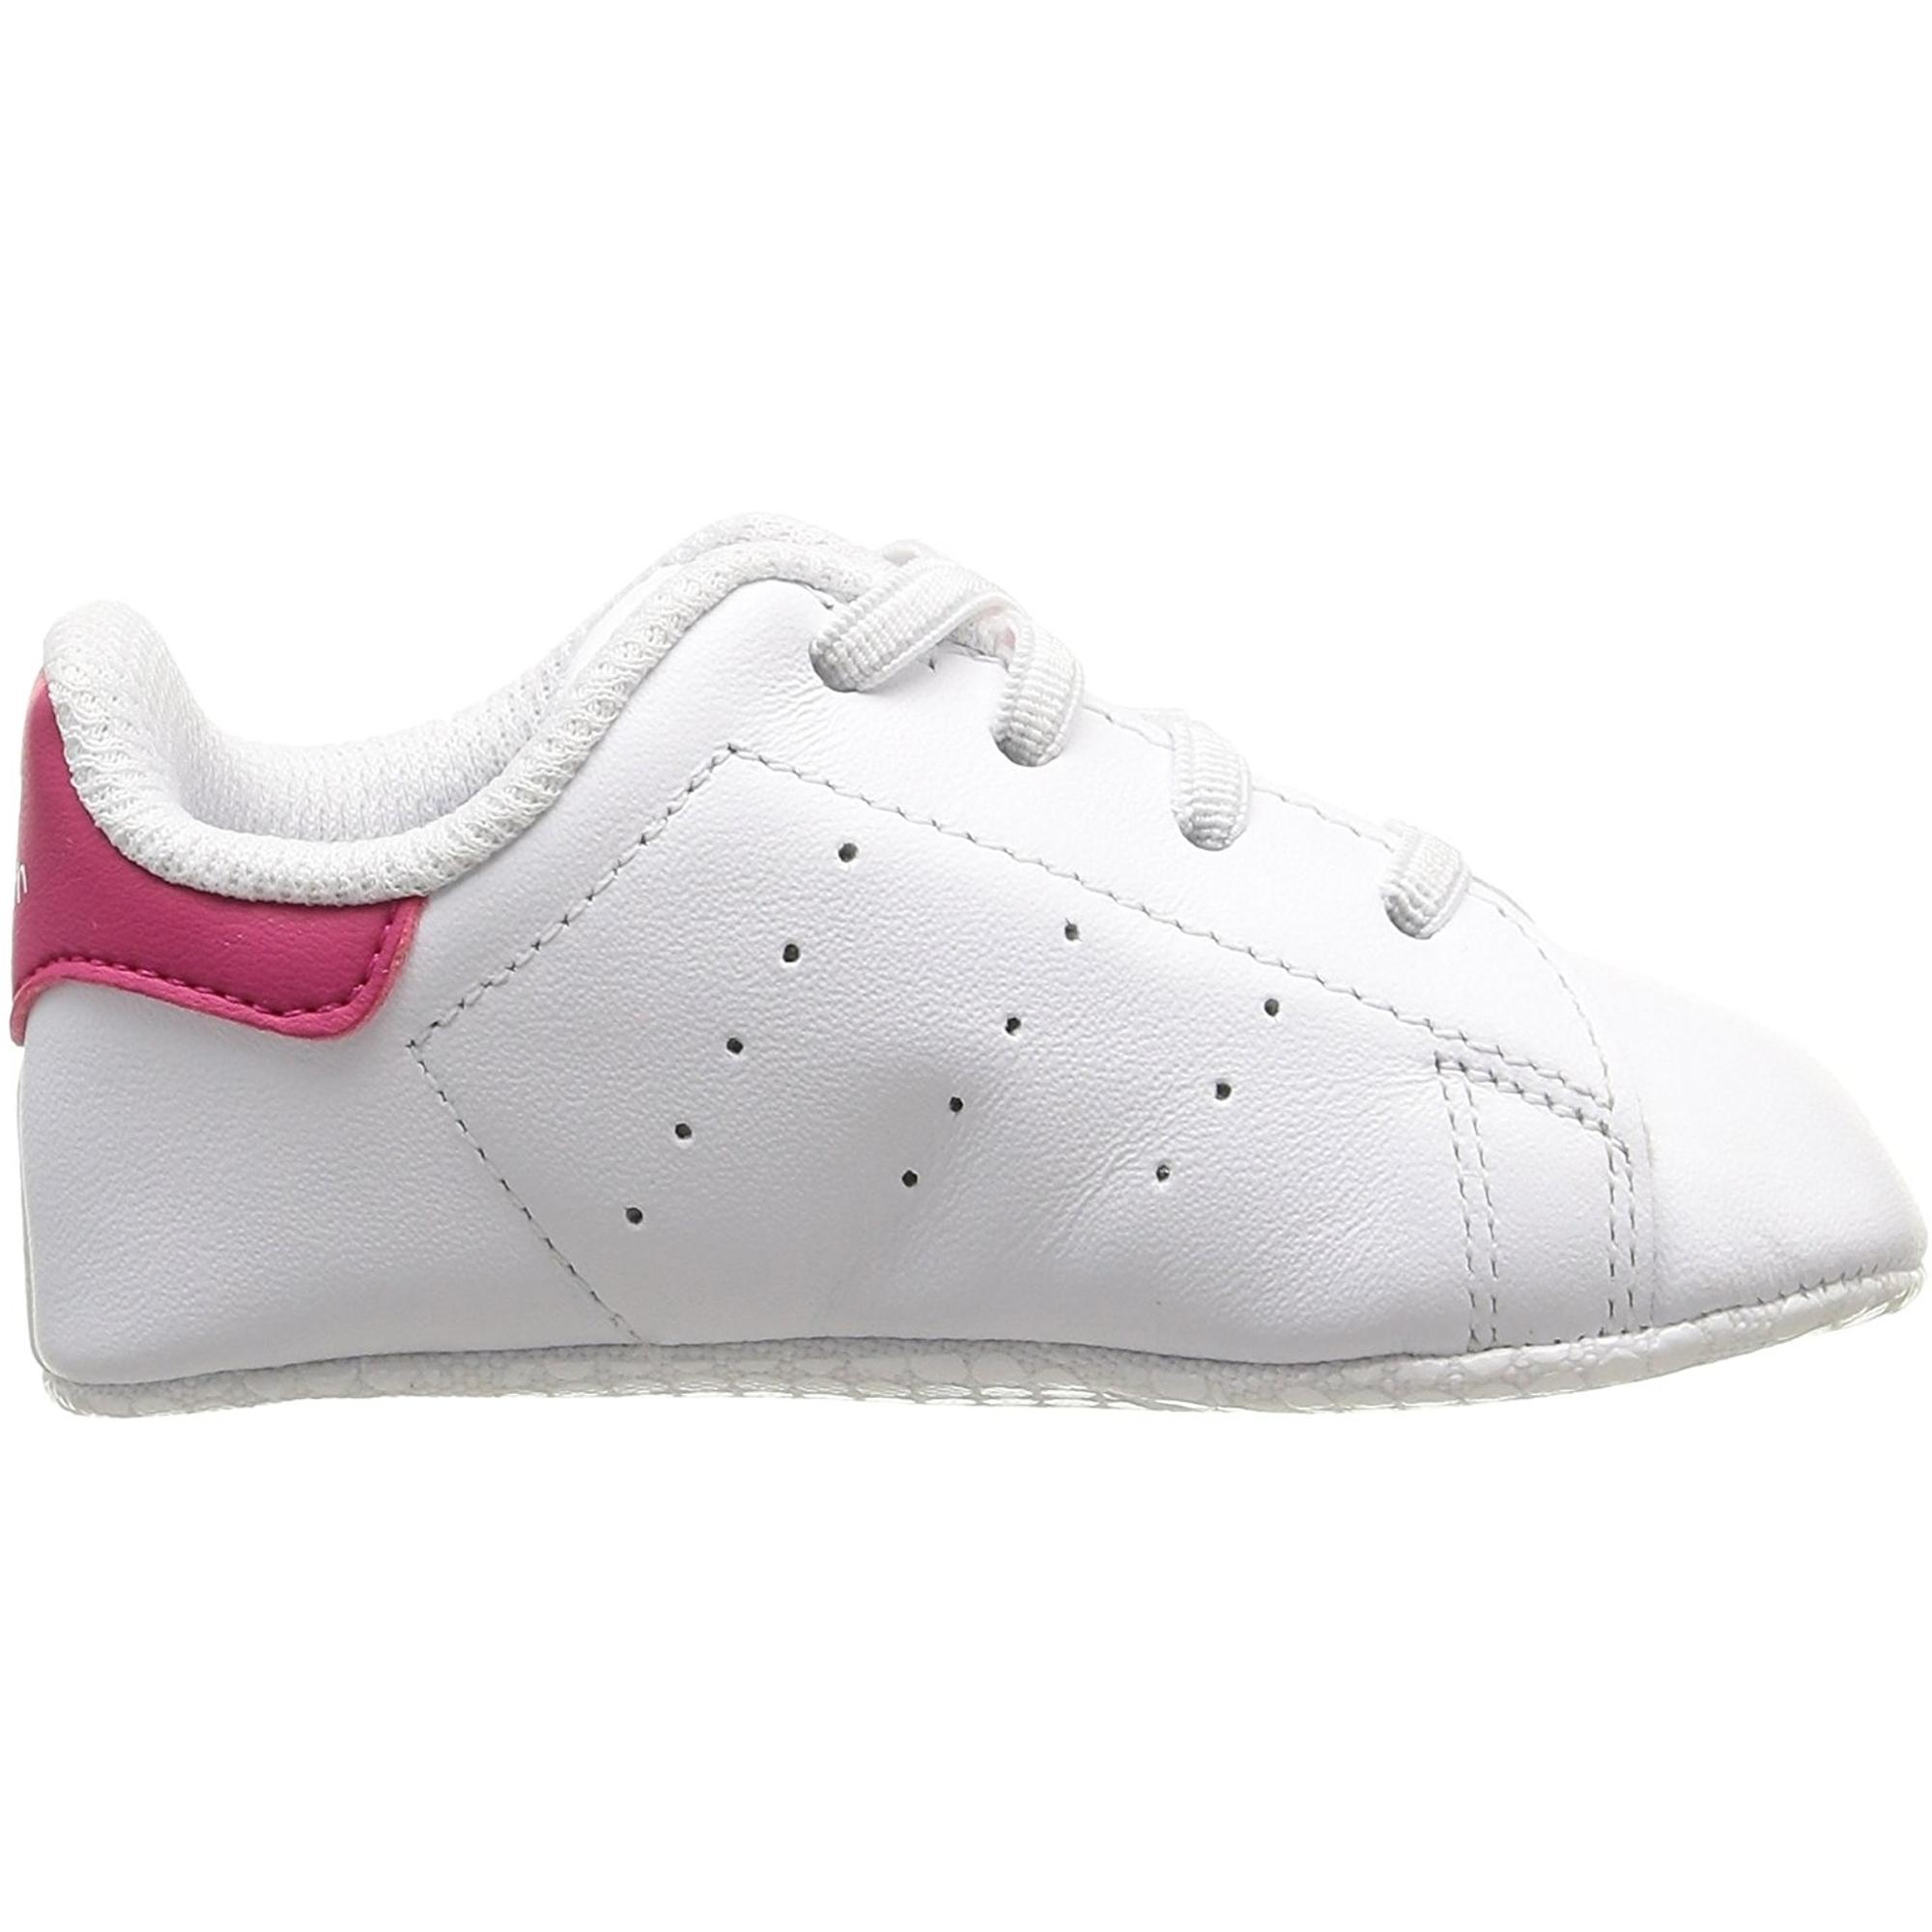 adidas Originals Stan Smith Crib White/Bold Pink Leather Baby